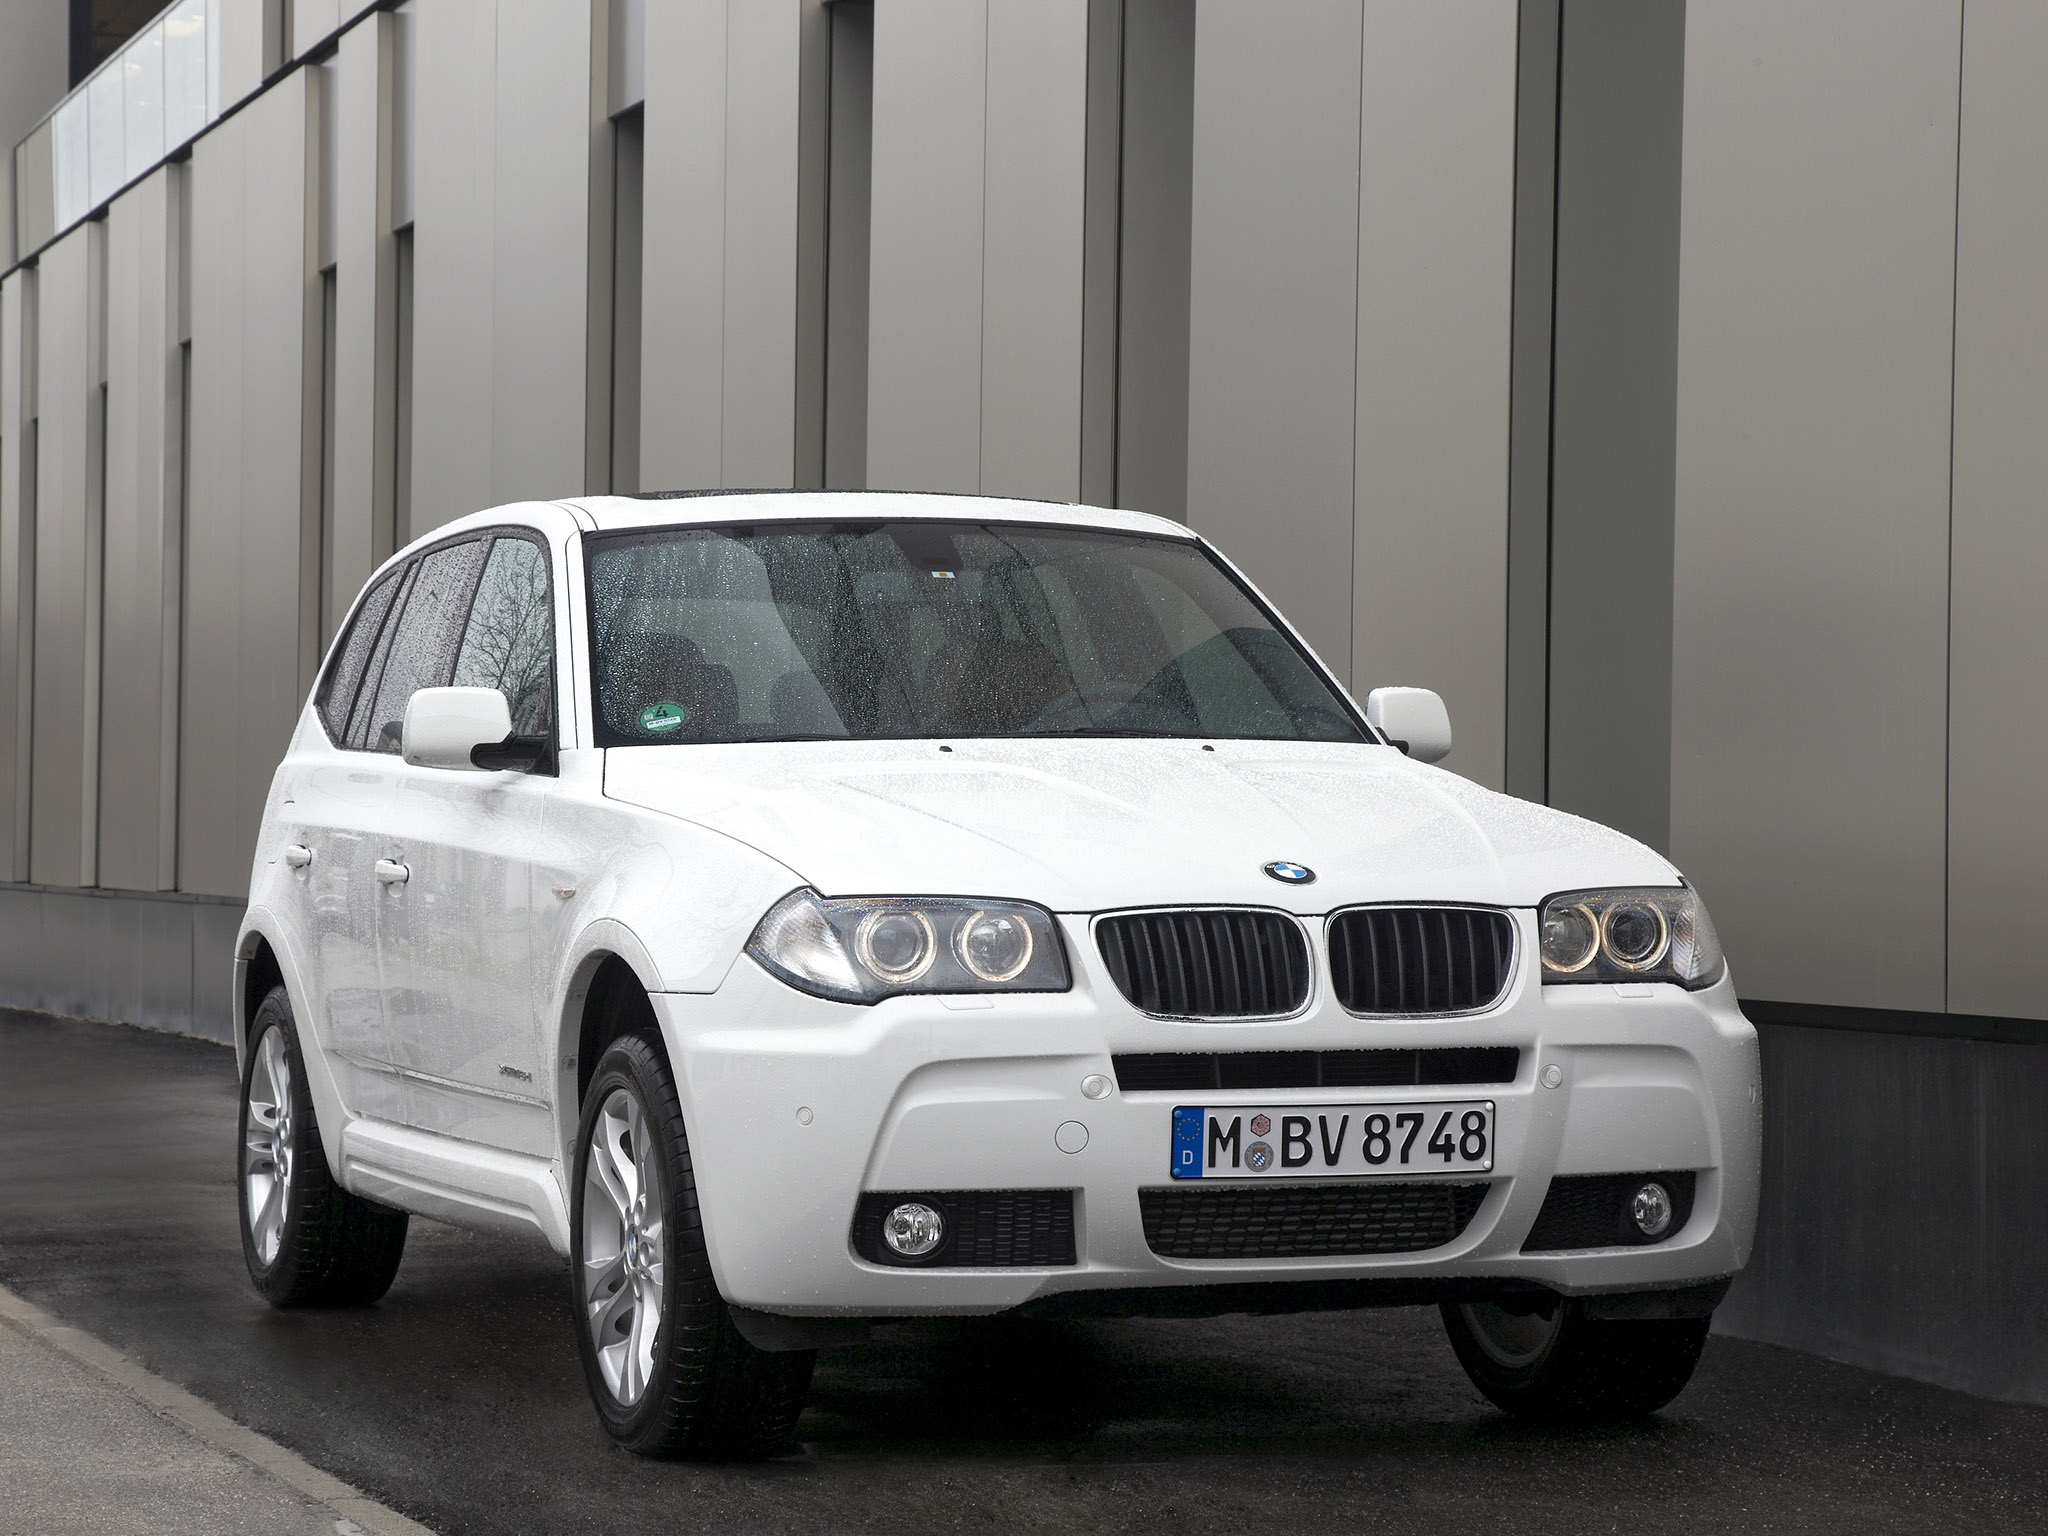 bmw x3 xdrive e83 2009 bmw x3 xdrive e83 2009 photo 13 car in pictures car photo gallery. Black Bedroom Furniture Sets. Home Design Ideas